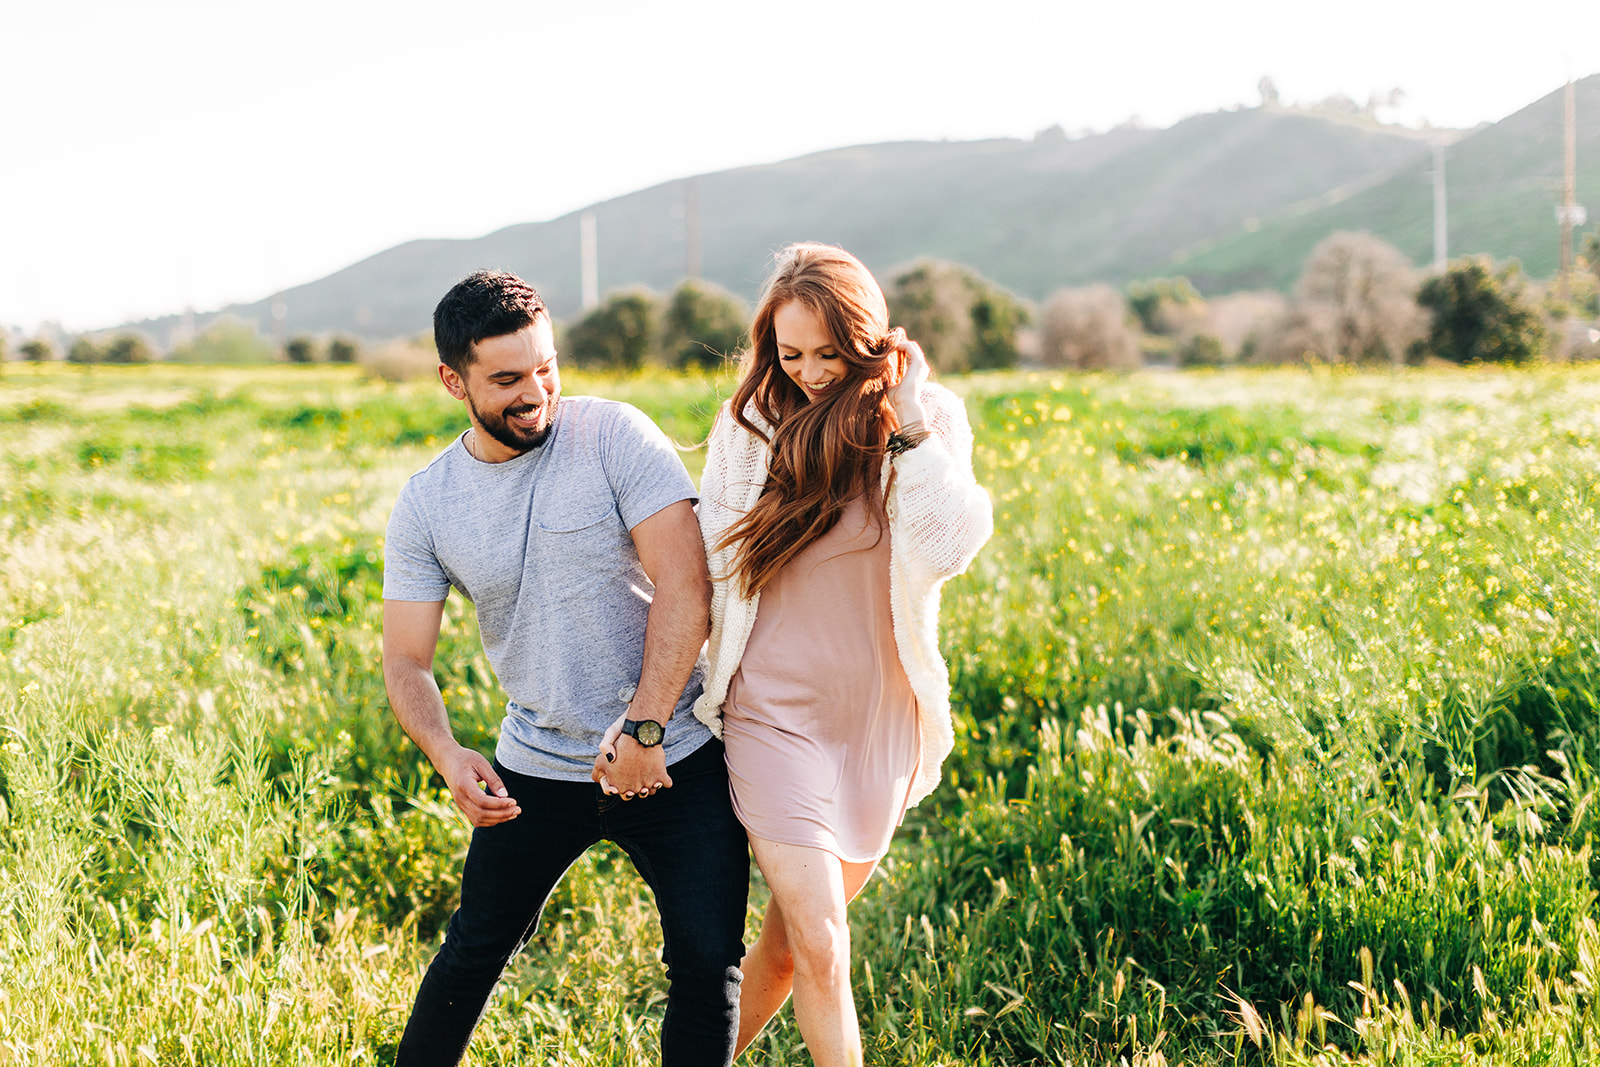 Katie-Yovin_Richard_Superbloom-Engagement-Photos_Clarisse-Rae_Southern-California-Wedding-Photographer-Orange-County-Engagement-Photos-21